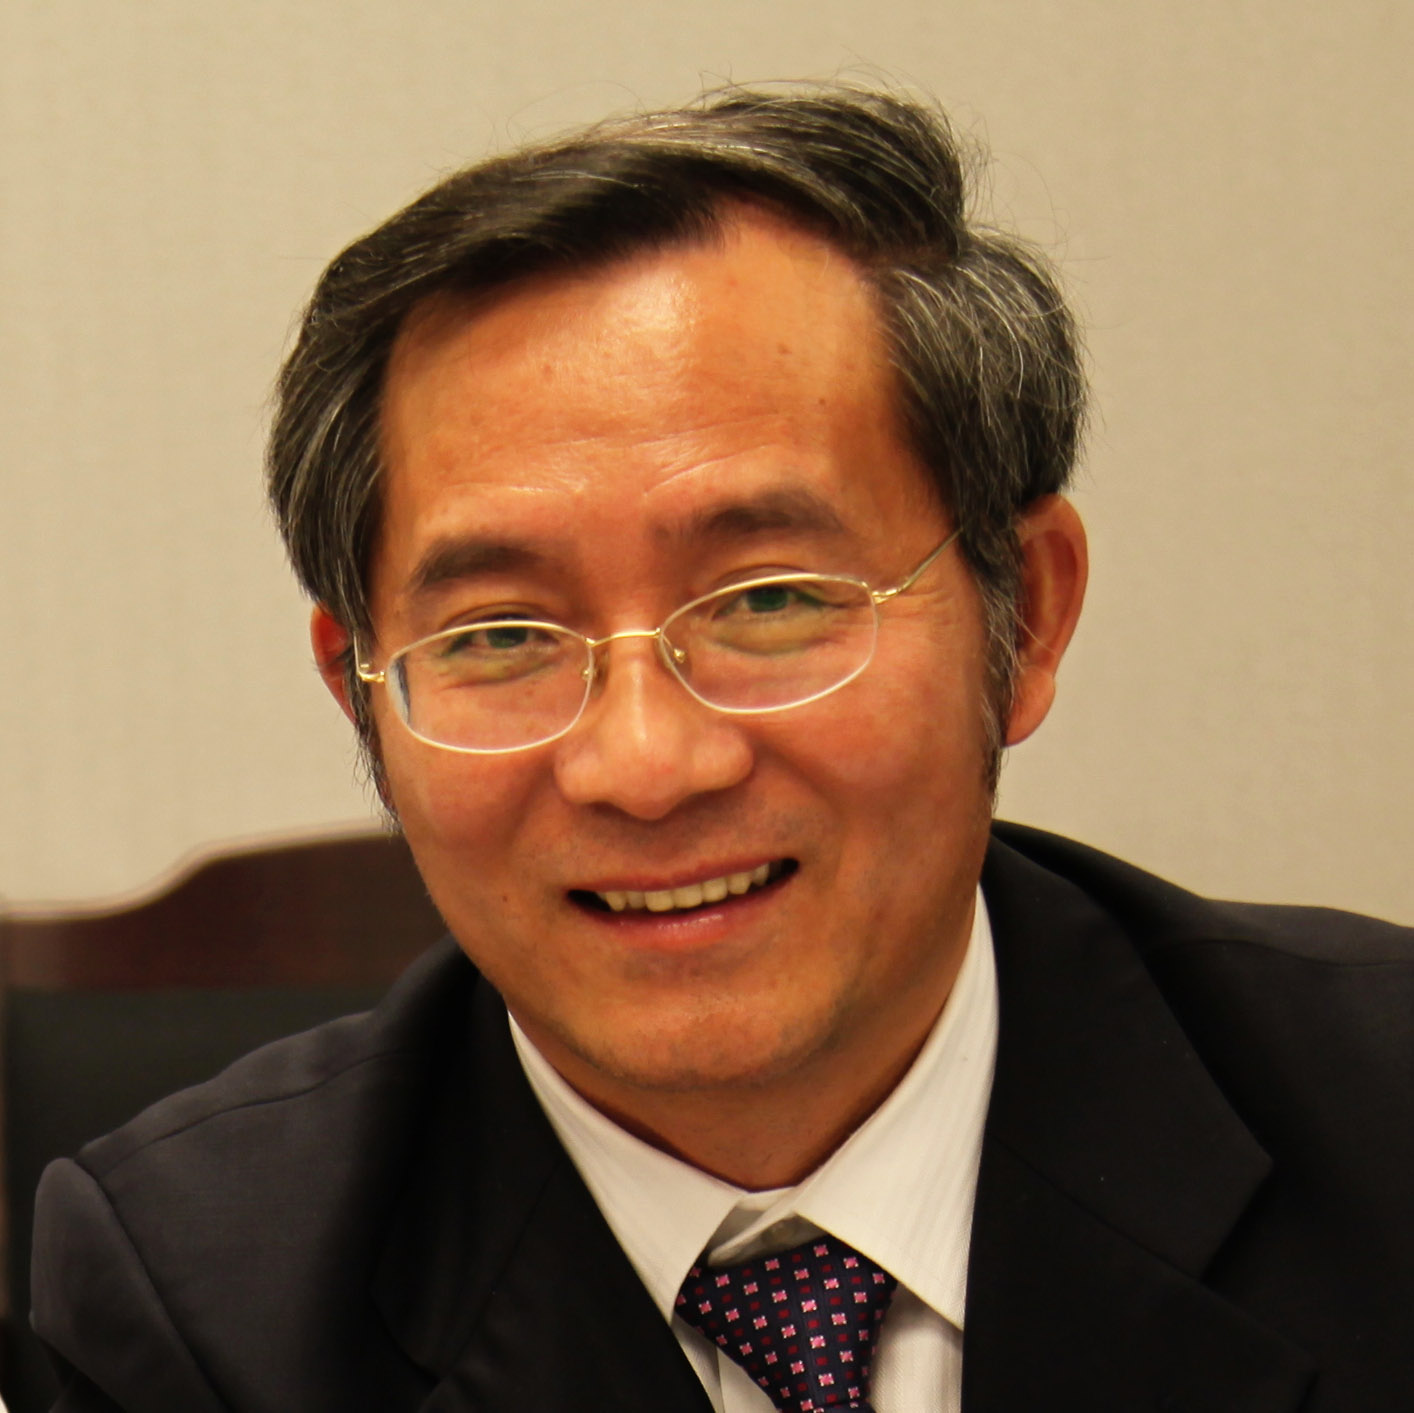 Zhongying Wang, president of Tiptop Energy Production US LLC, will be honored as a Top Contributor to Cross-Cultural Understanding during the UCO International House's Night Market Gala, 6 p.m. April 18 at the UCO International House. Tickets are available for $50 per person or $75 per couple. To purchase, visit www.uco.edu/ihouse.